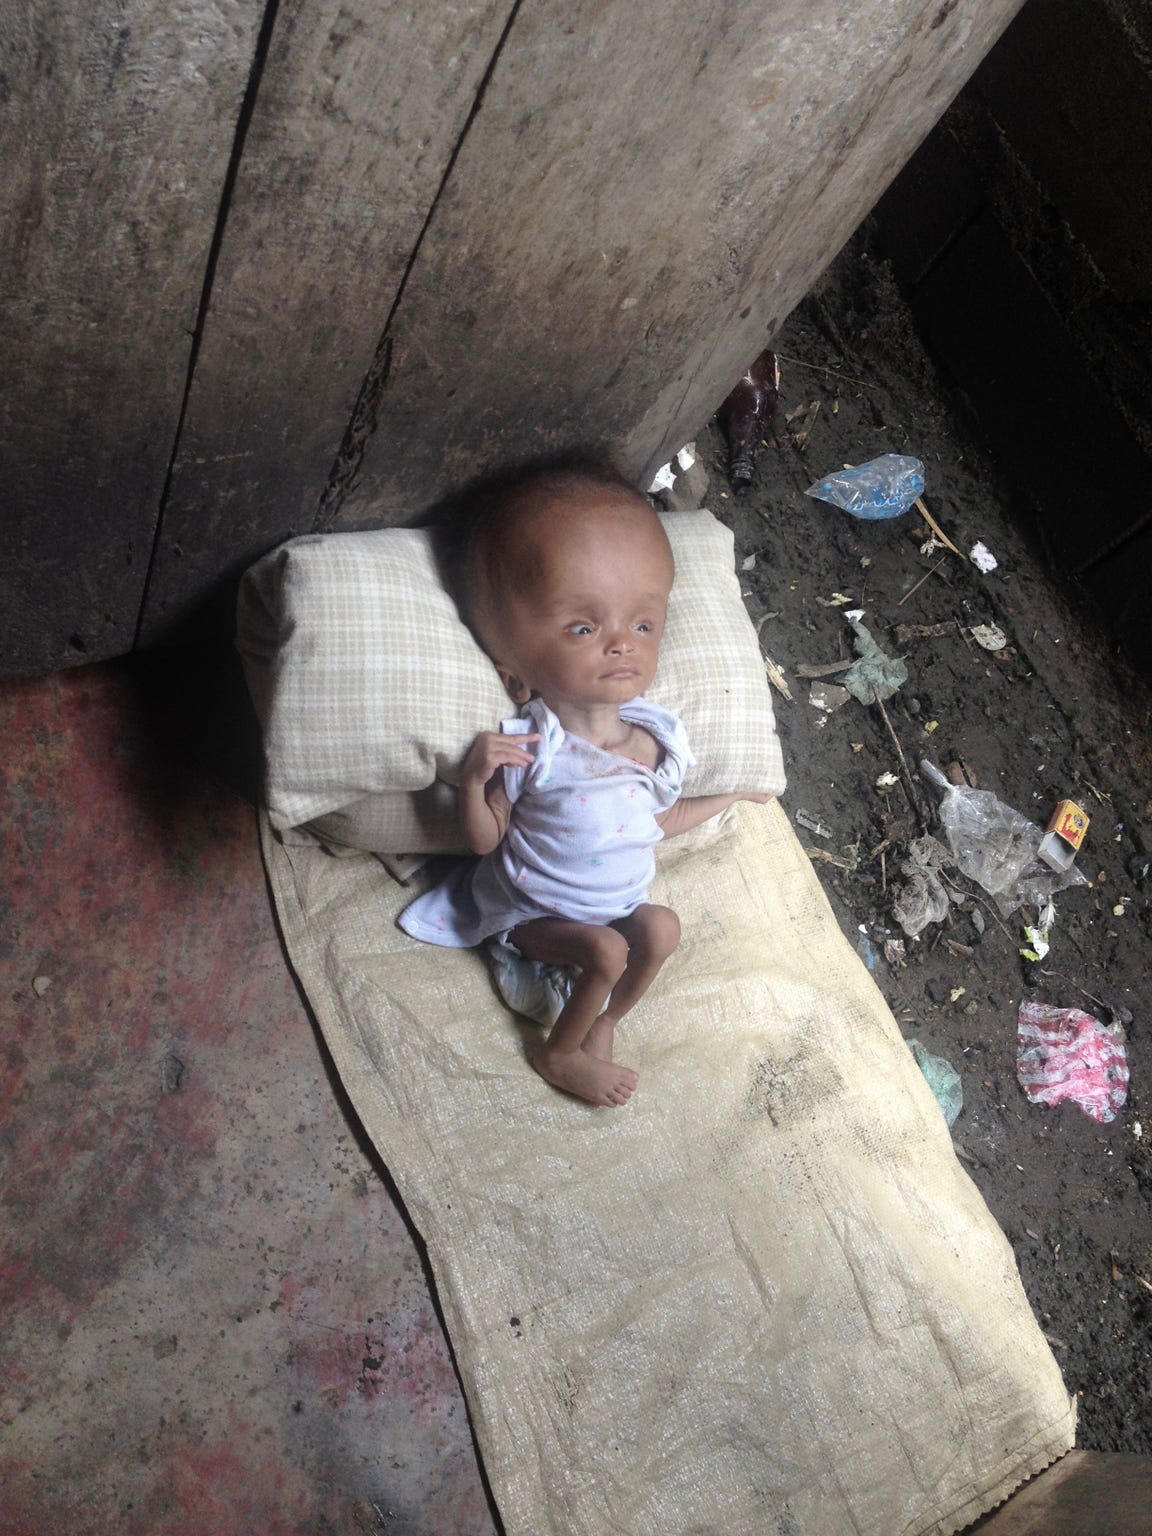 Nika was born to a Haitian prostitute. She suffers from hydrocephalus and hydranencephaly.